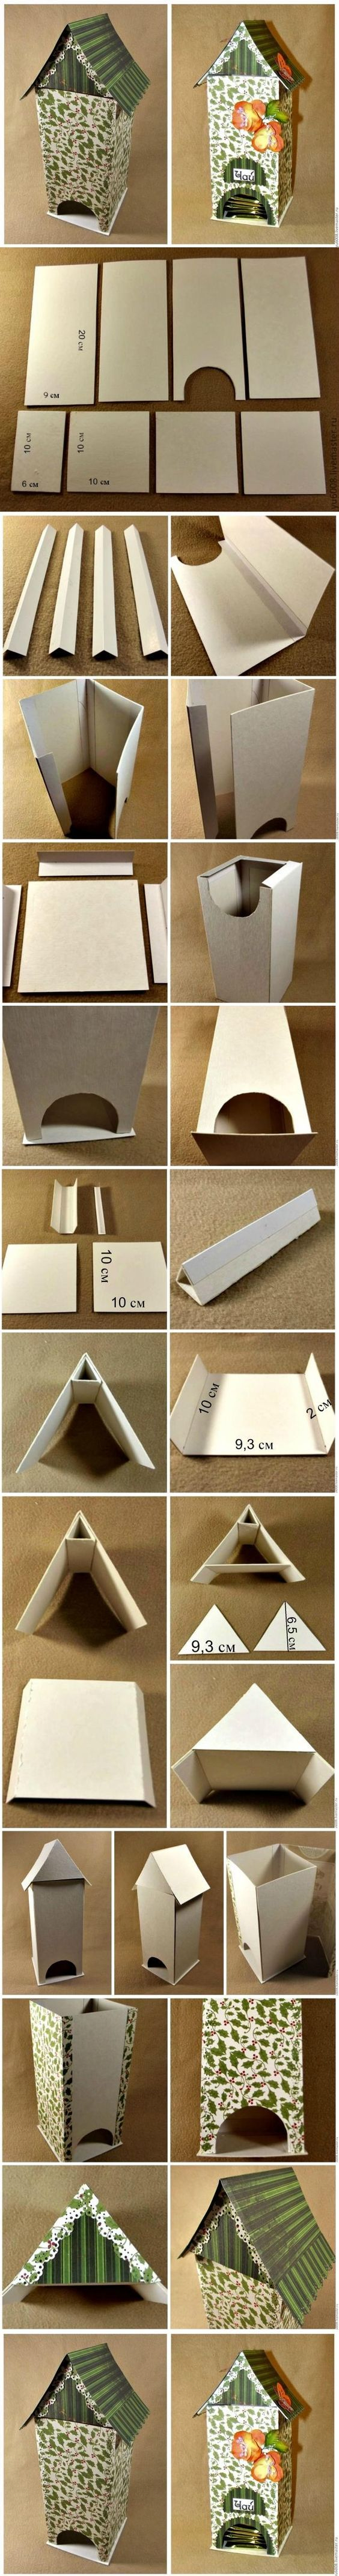 DIY Cardboard Tea Bag Dispenser: